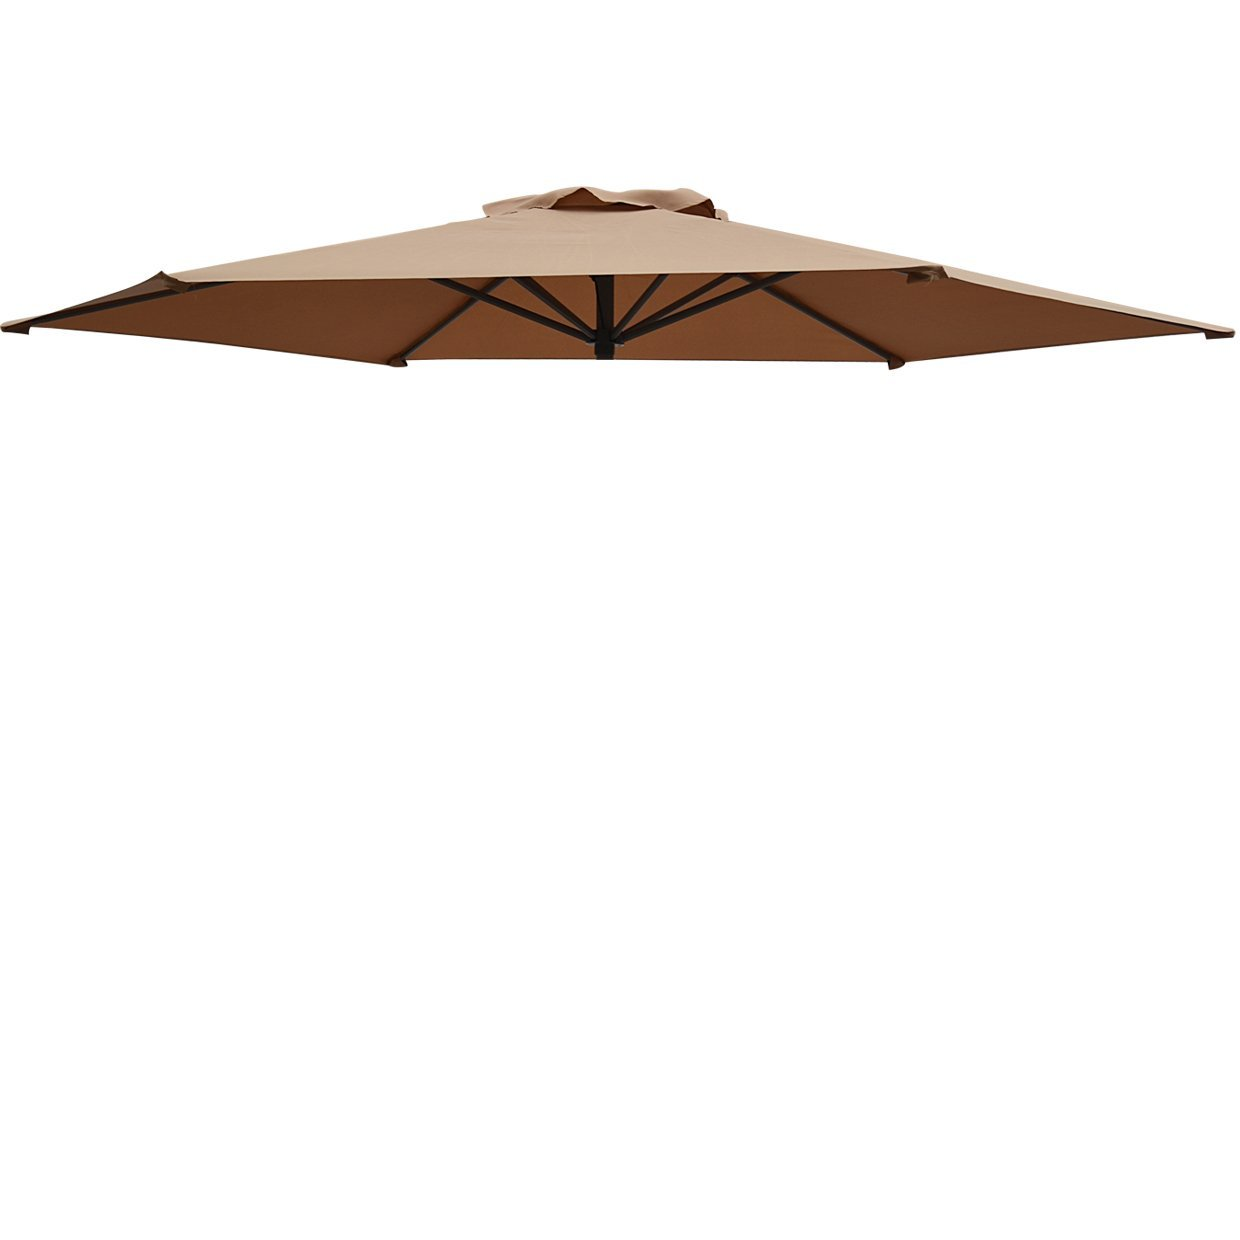 Replacement Patio Umbrella Canopy Cover For 9ft 6 Ribs Umbrella (CANOPY  ONLY) Tan